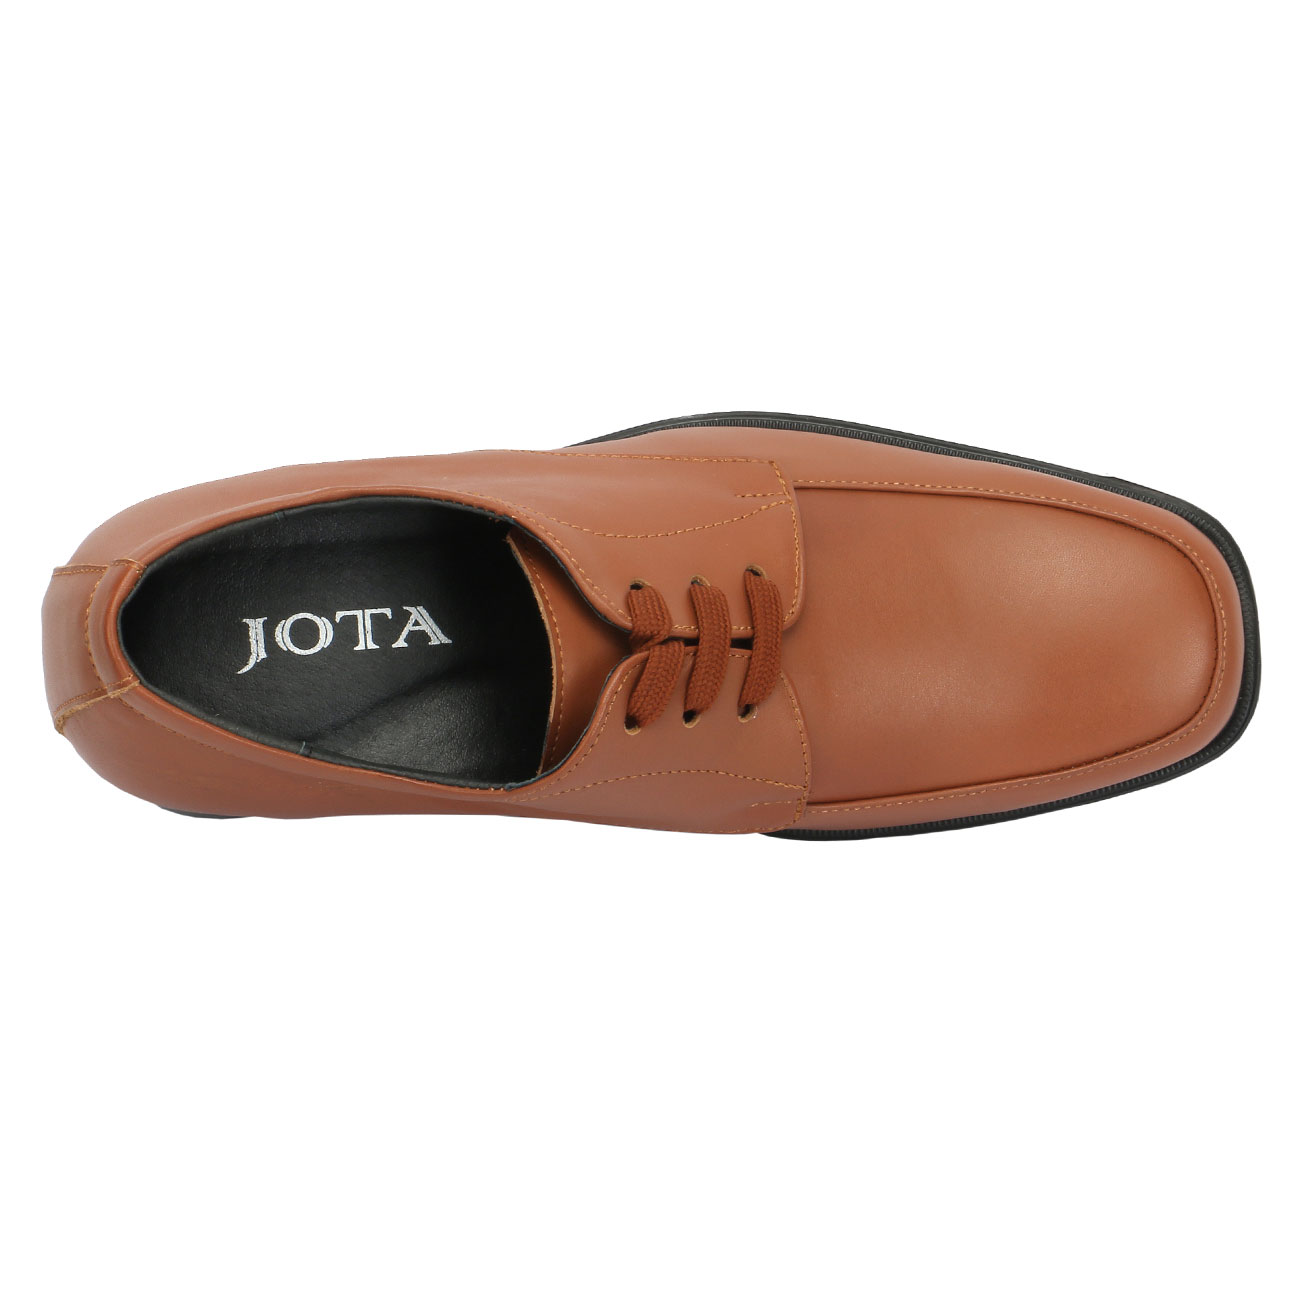 Guys shoes for increasing height-4